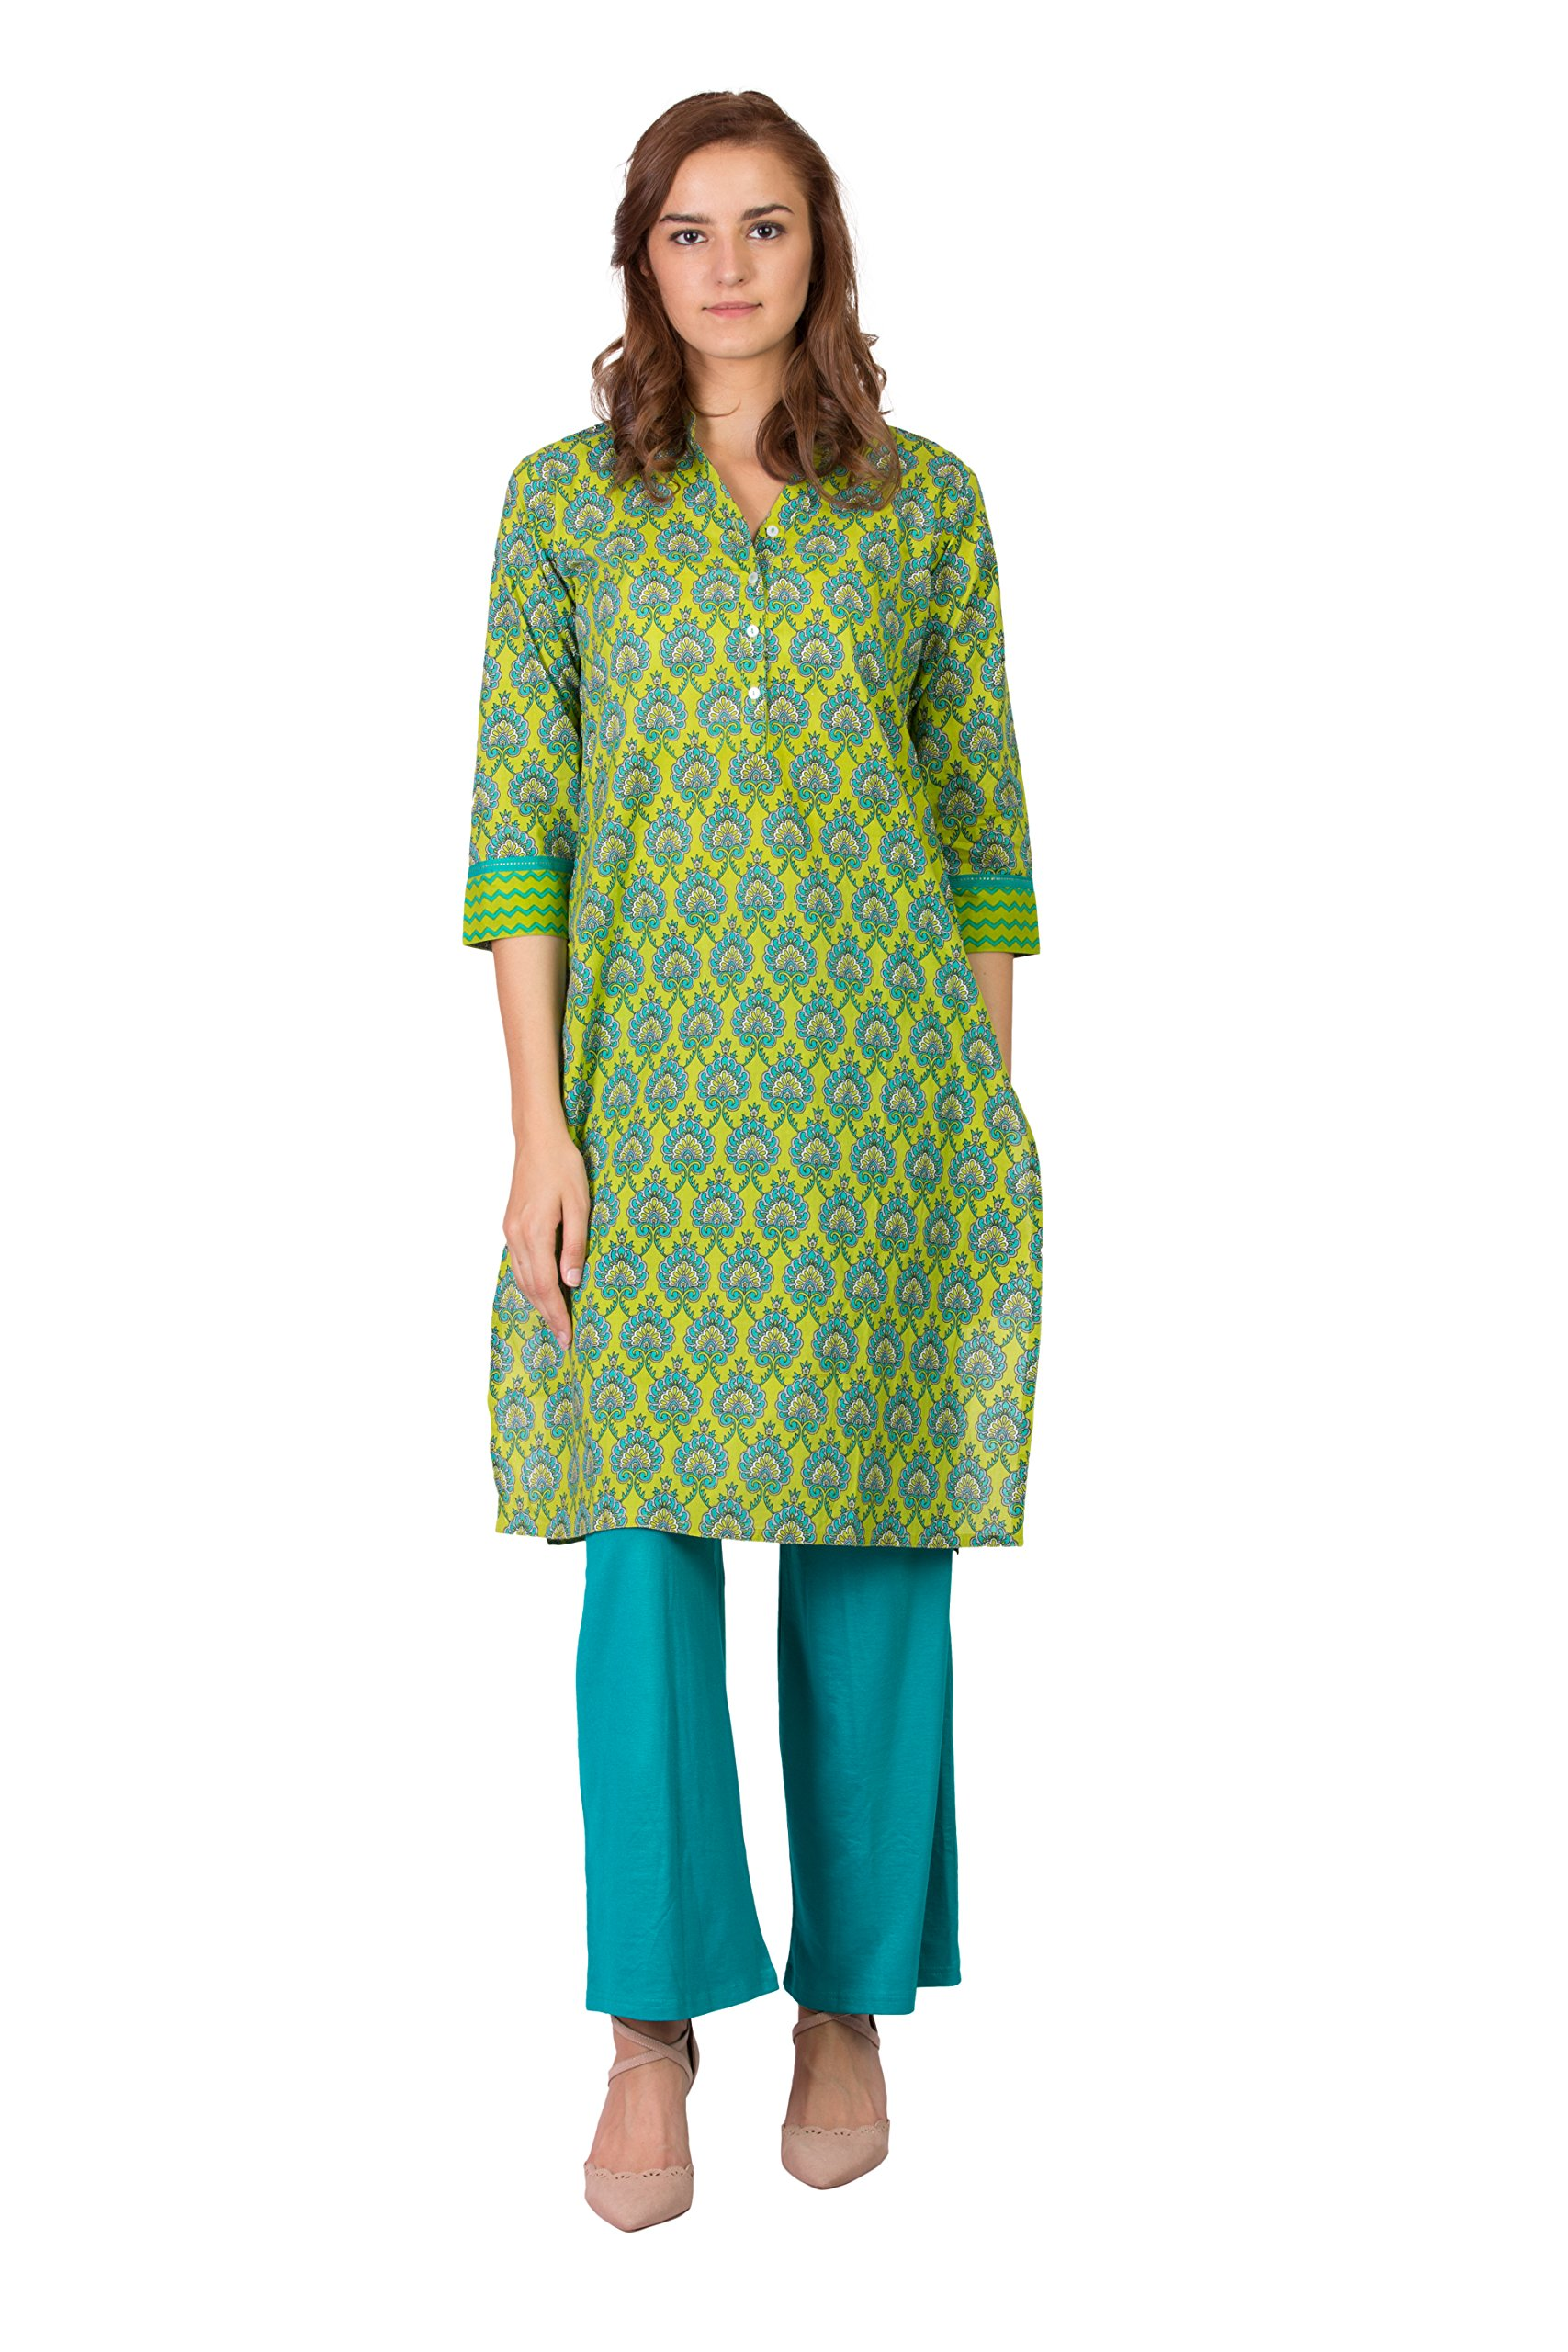 SABHYATA Women Kurta Designer Ethnic Long Dress Casual Tunic Kurti for Women Ladies Partywear Material 100% Pure Cotton Chinese Collar XX-Large P.Green